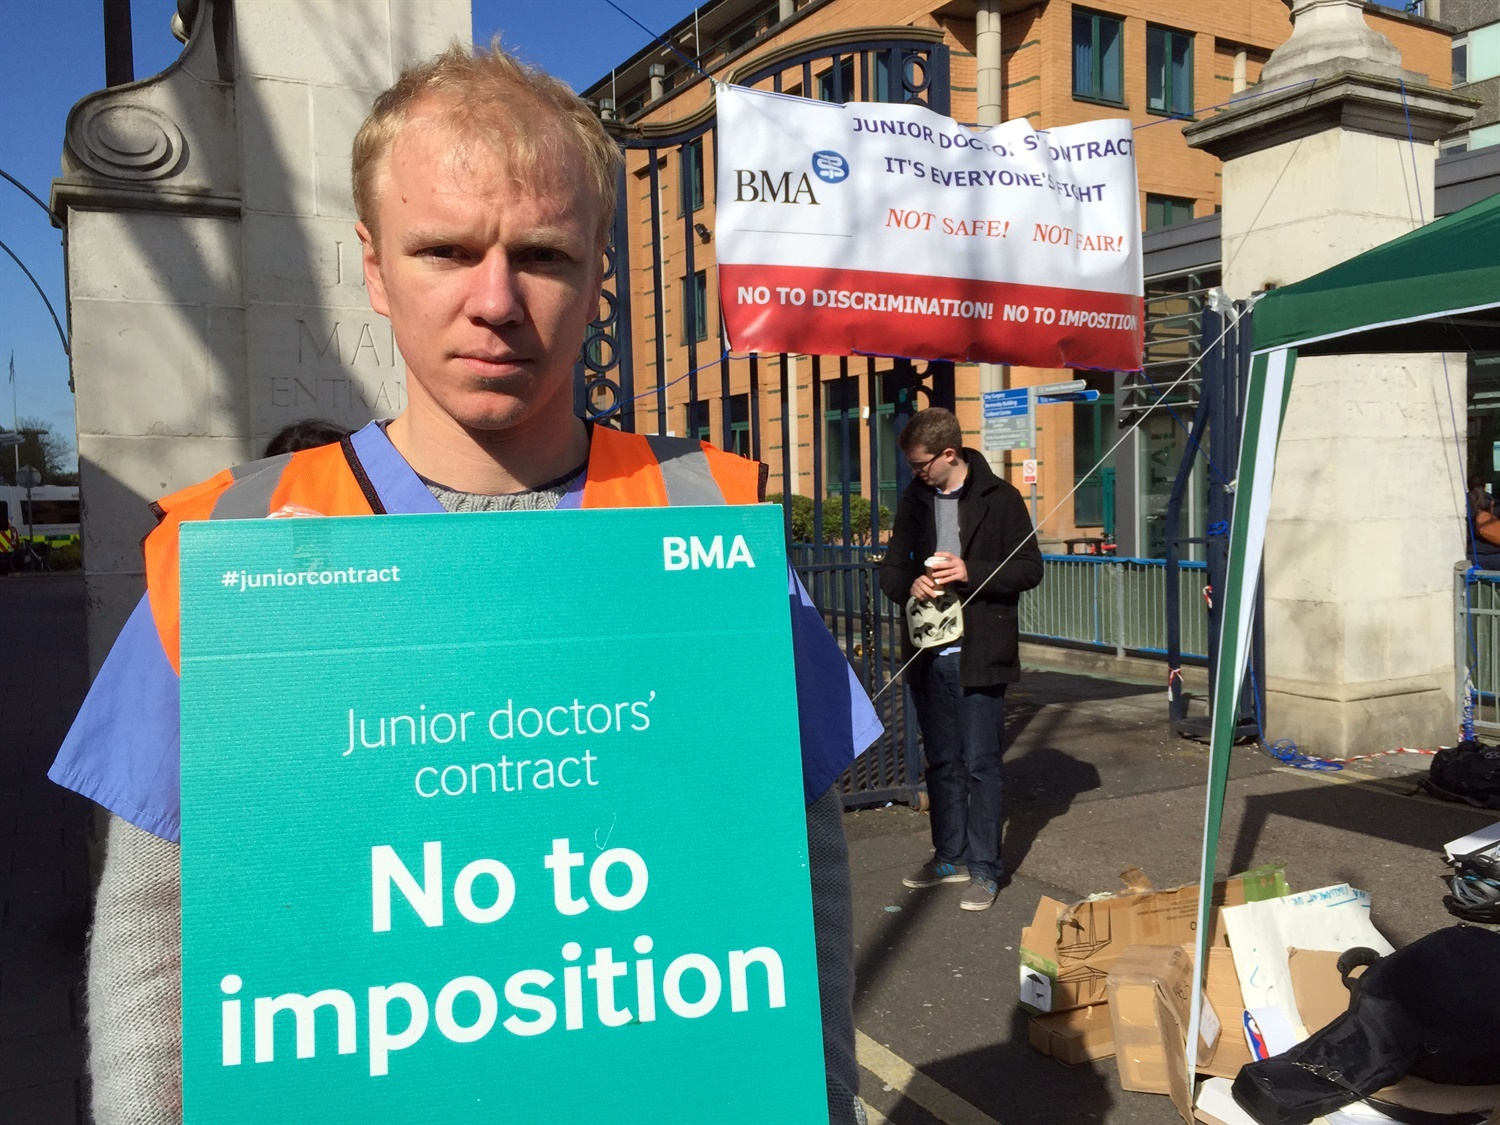 Hunt agrees to 'pause' imposition and resume talks with junior doctors